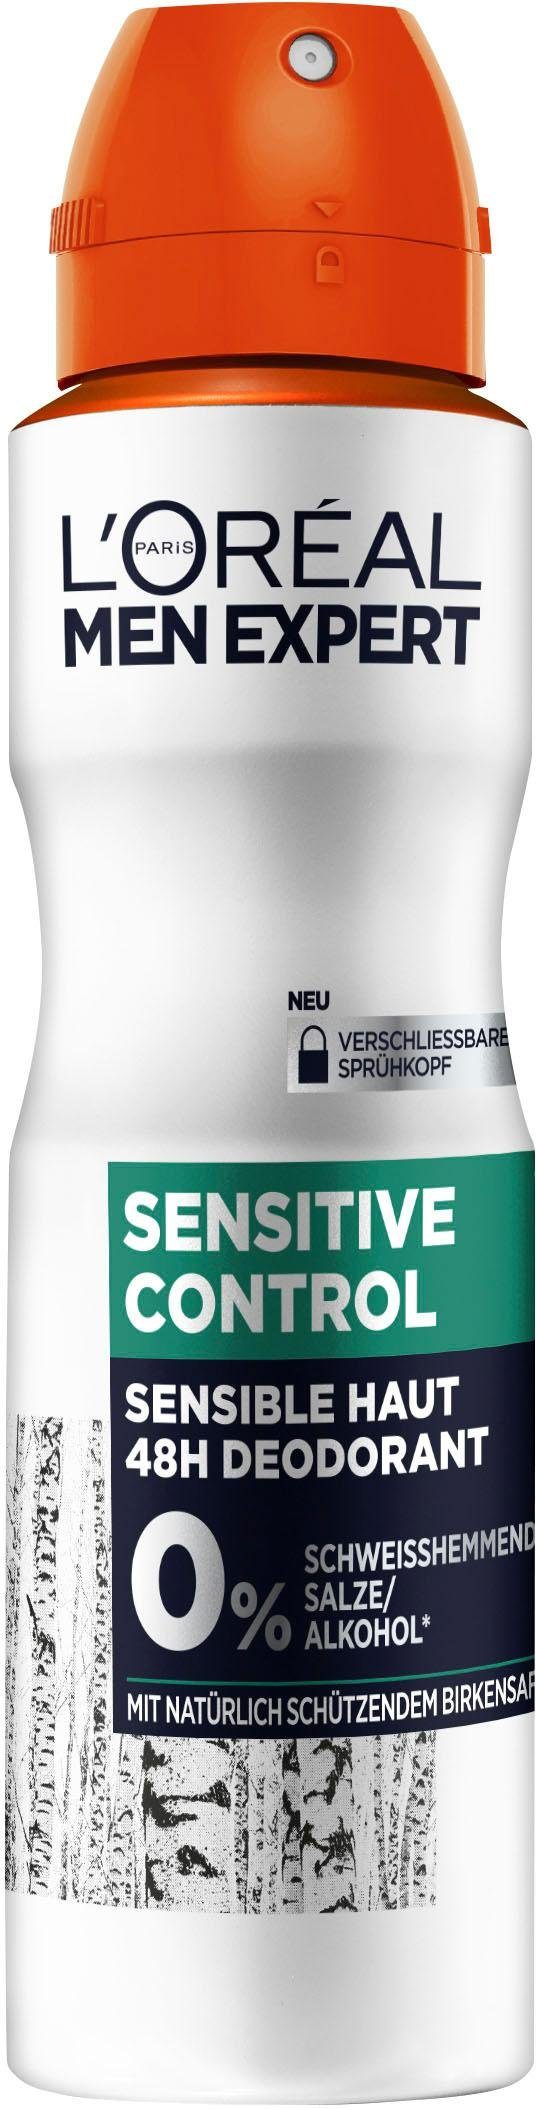 L'ORÉAL PARIS MEN EXPERT Deo-Spray »Sensitive Control«, mit Birkensaft